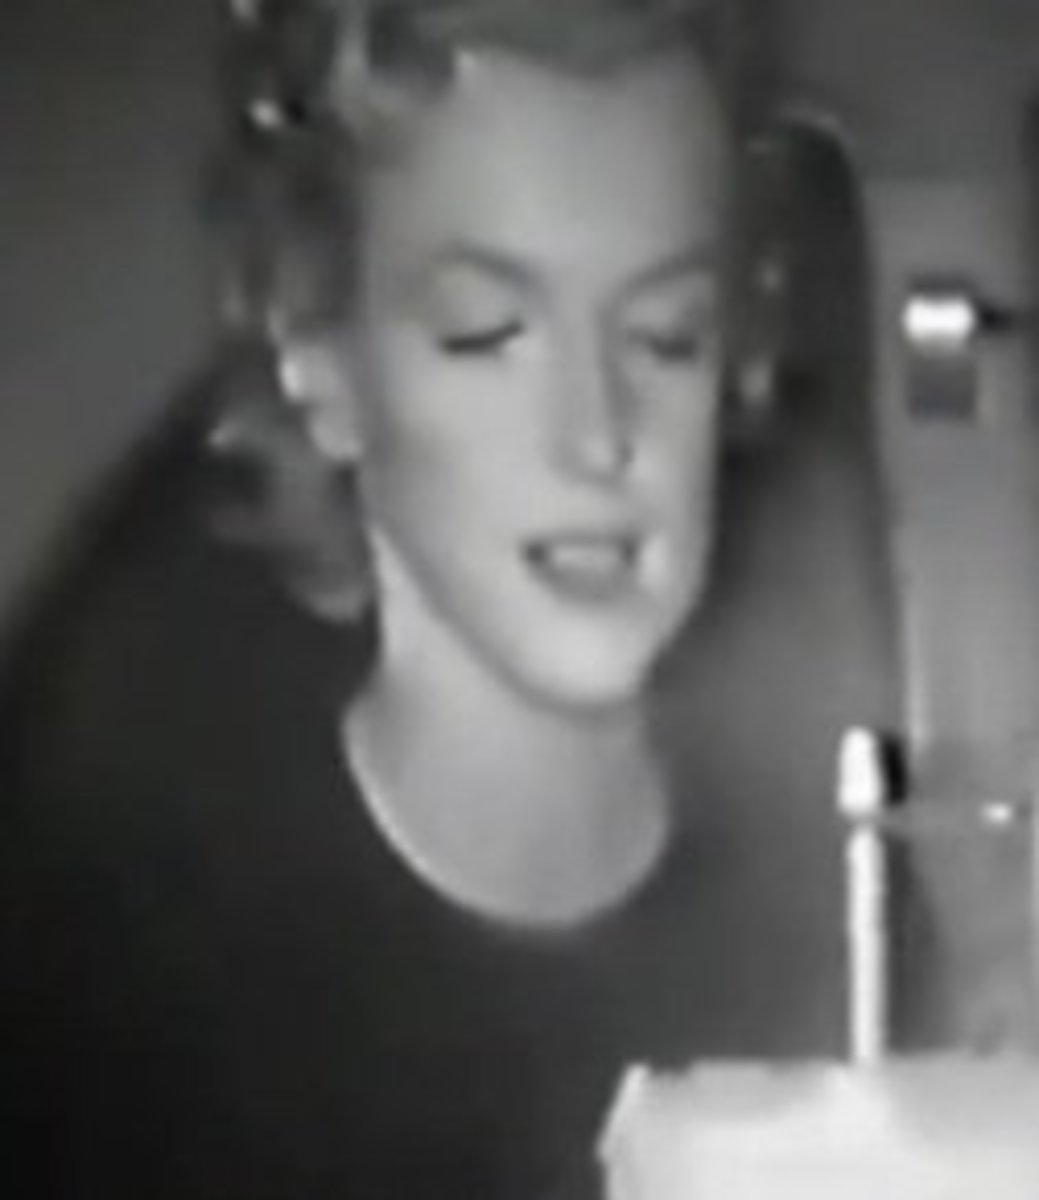 A rare image of Marilyn Monroe on her 30th birthday in the back of a car.